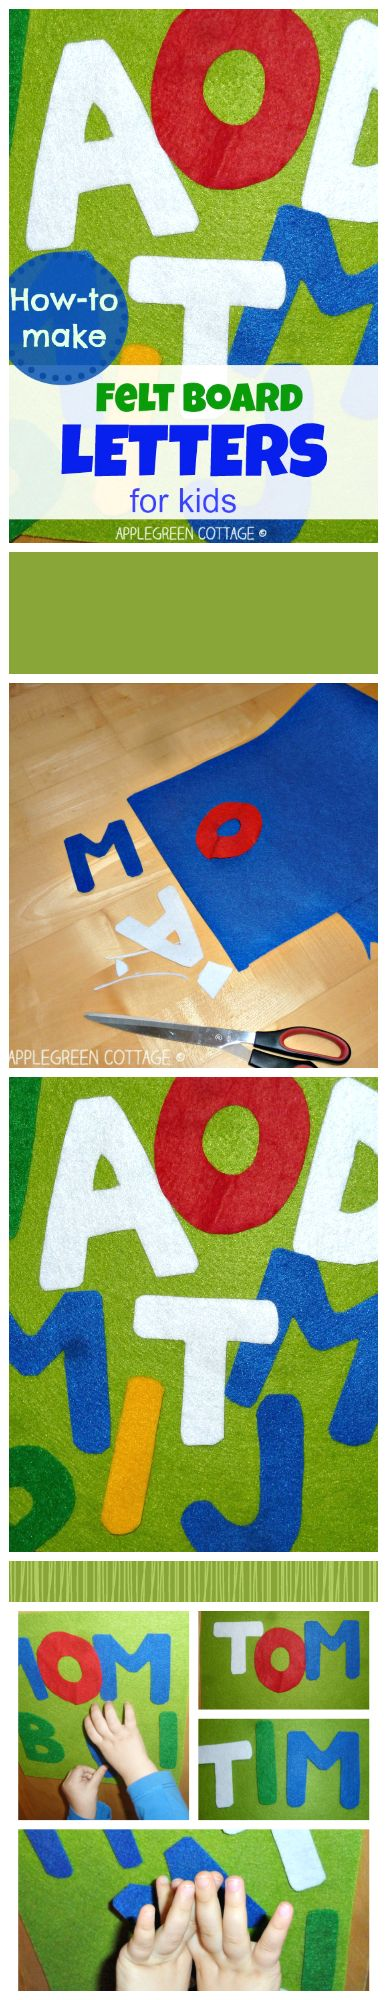 How to make a DIY felt board and SIMPLE felt letters for your kid. You'll also find a visual presentation of various felt materials to give you a better picture of what kind of felt to choose for the letters. Have a look!